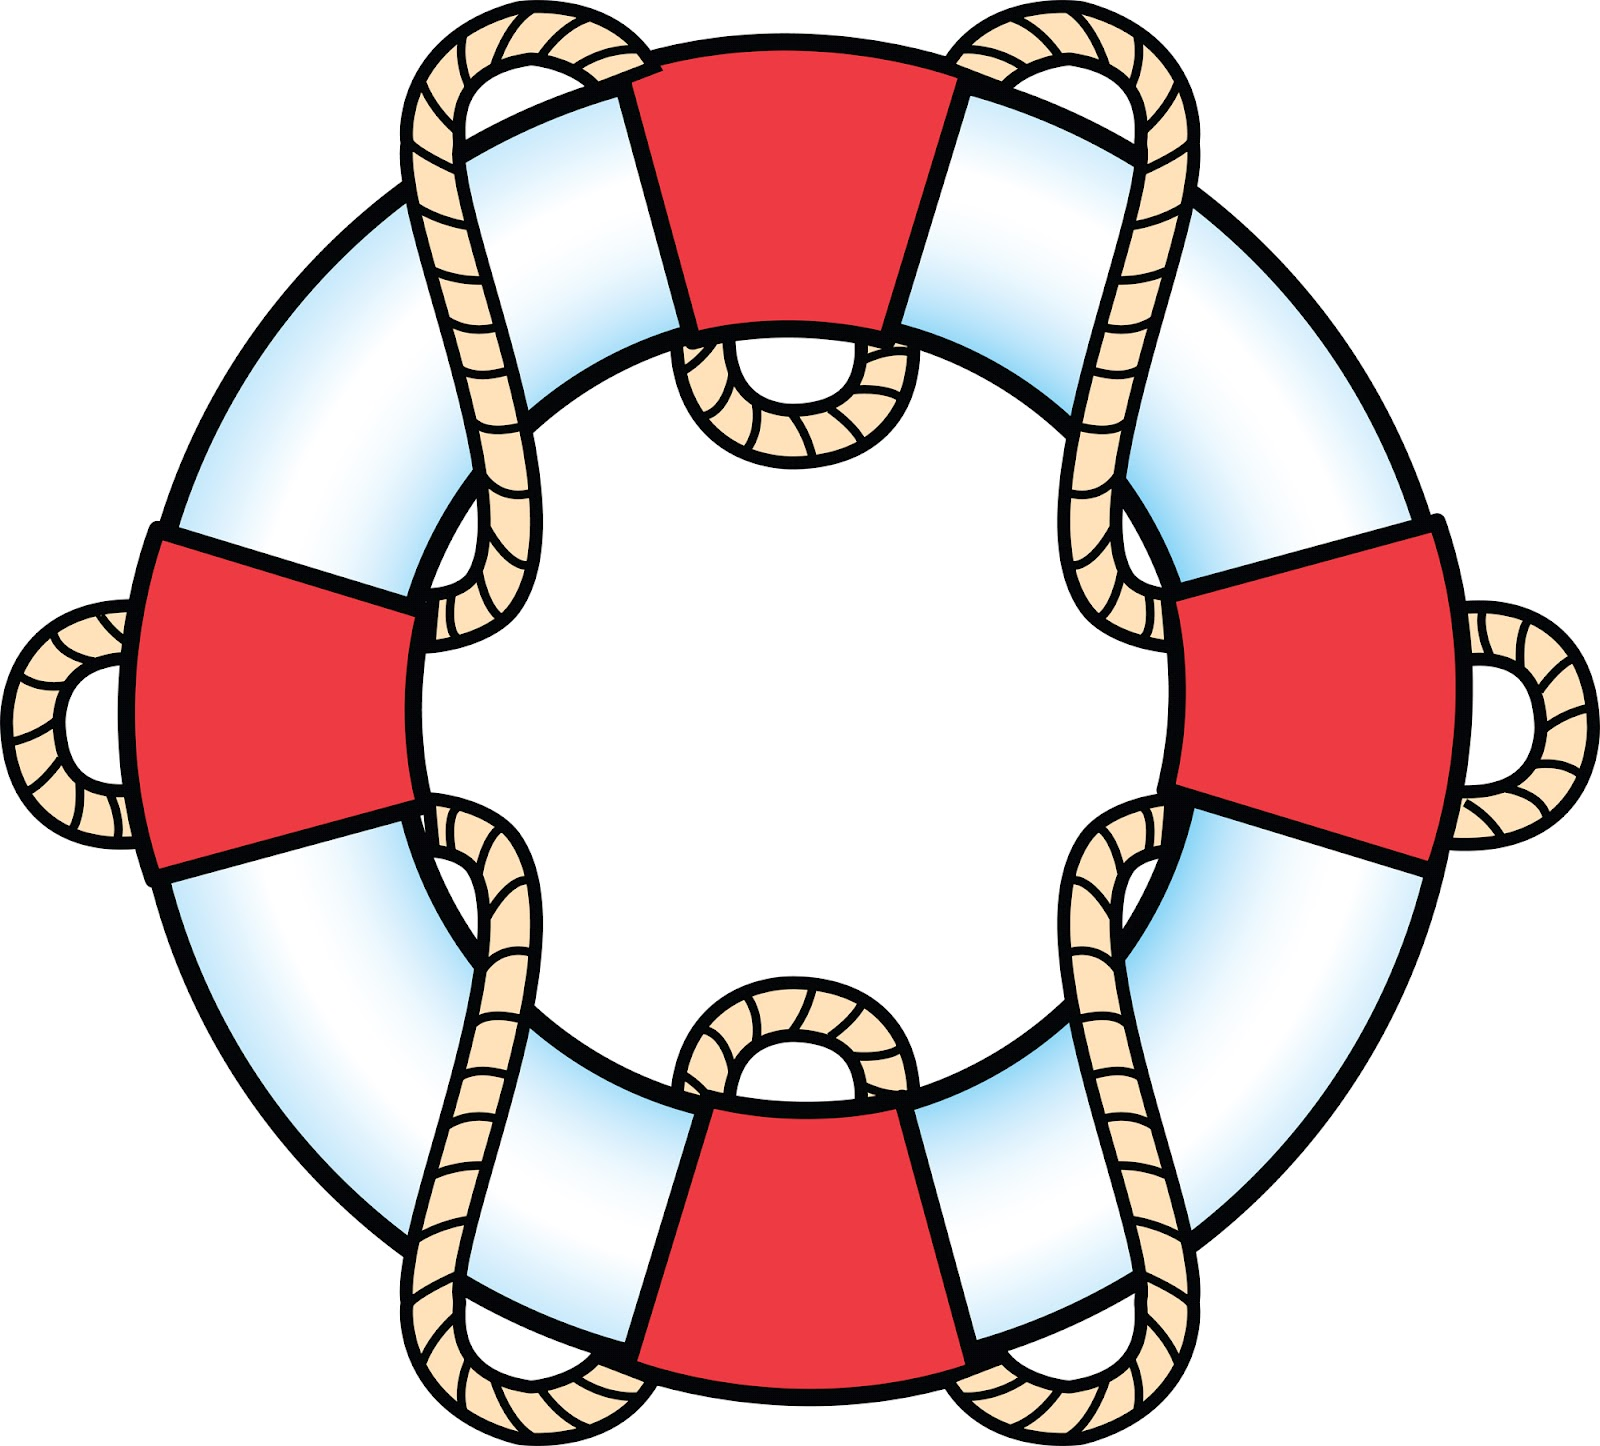 Baby clipart life preserver Nautical Nautical Shower Box: Baby